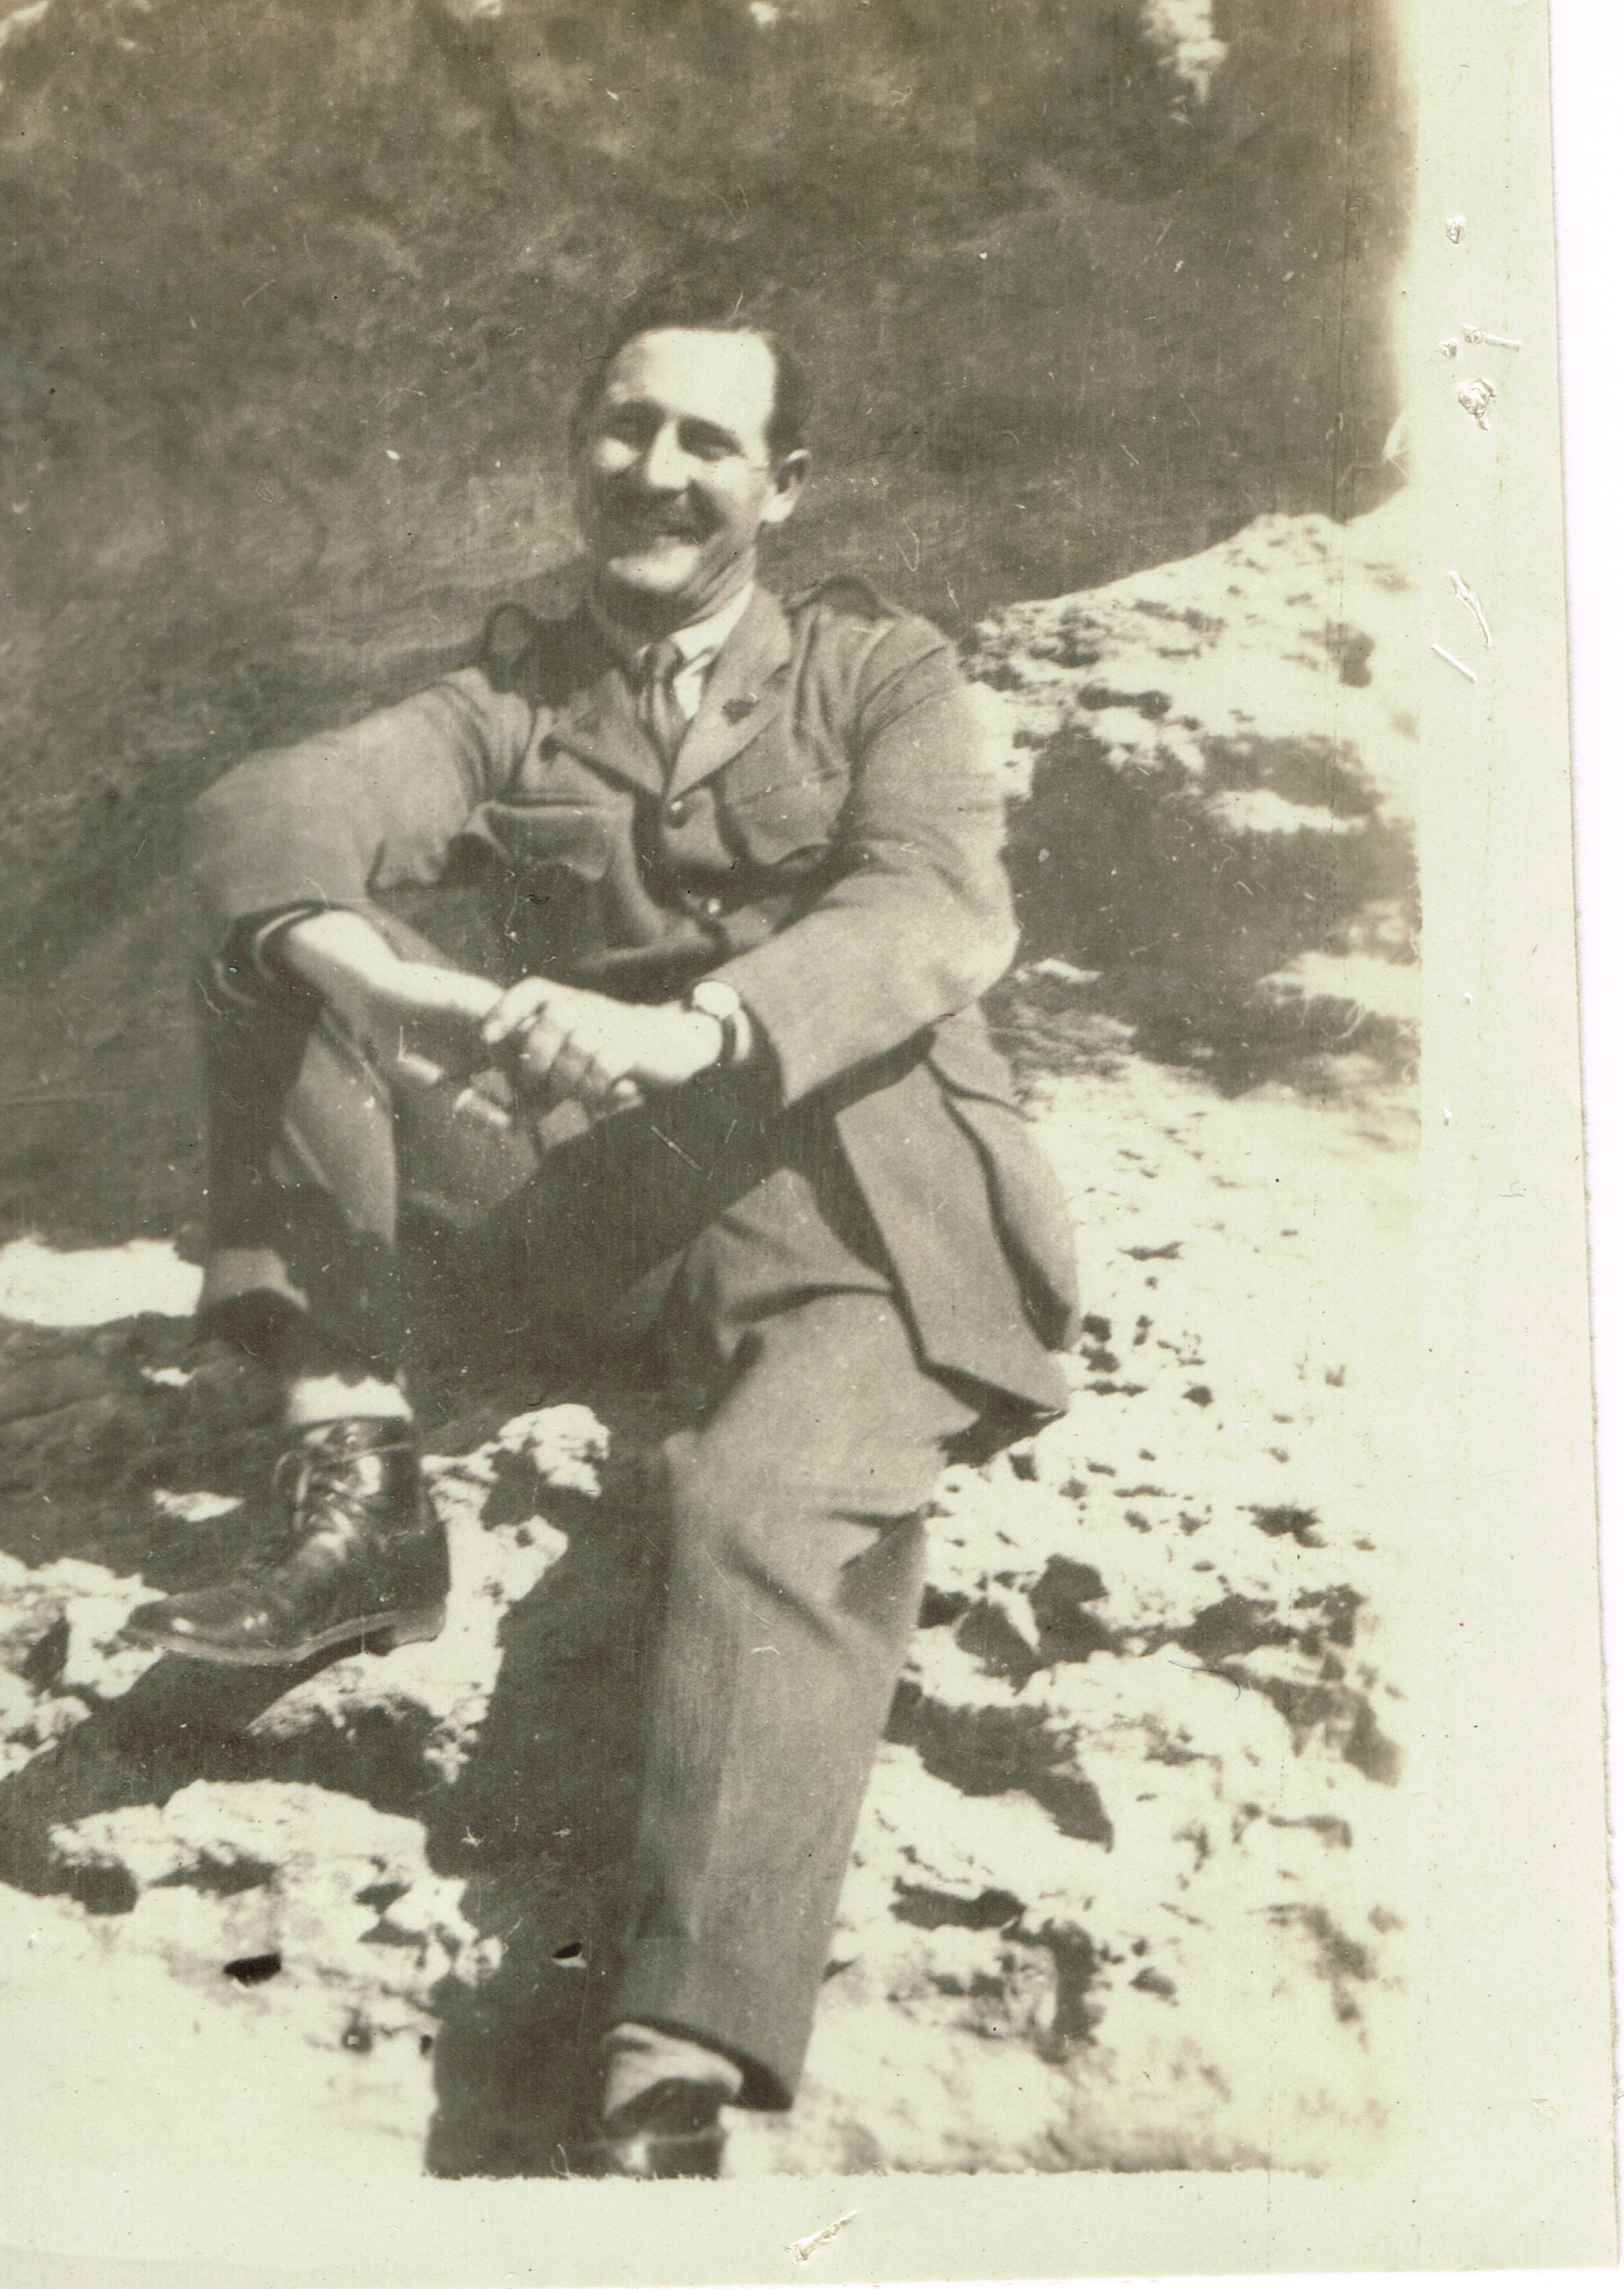 Hutch in Egypt, courtesy Gail Hughes and the Hutchinson family.